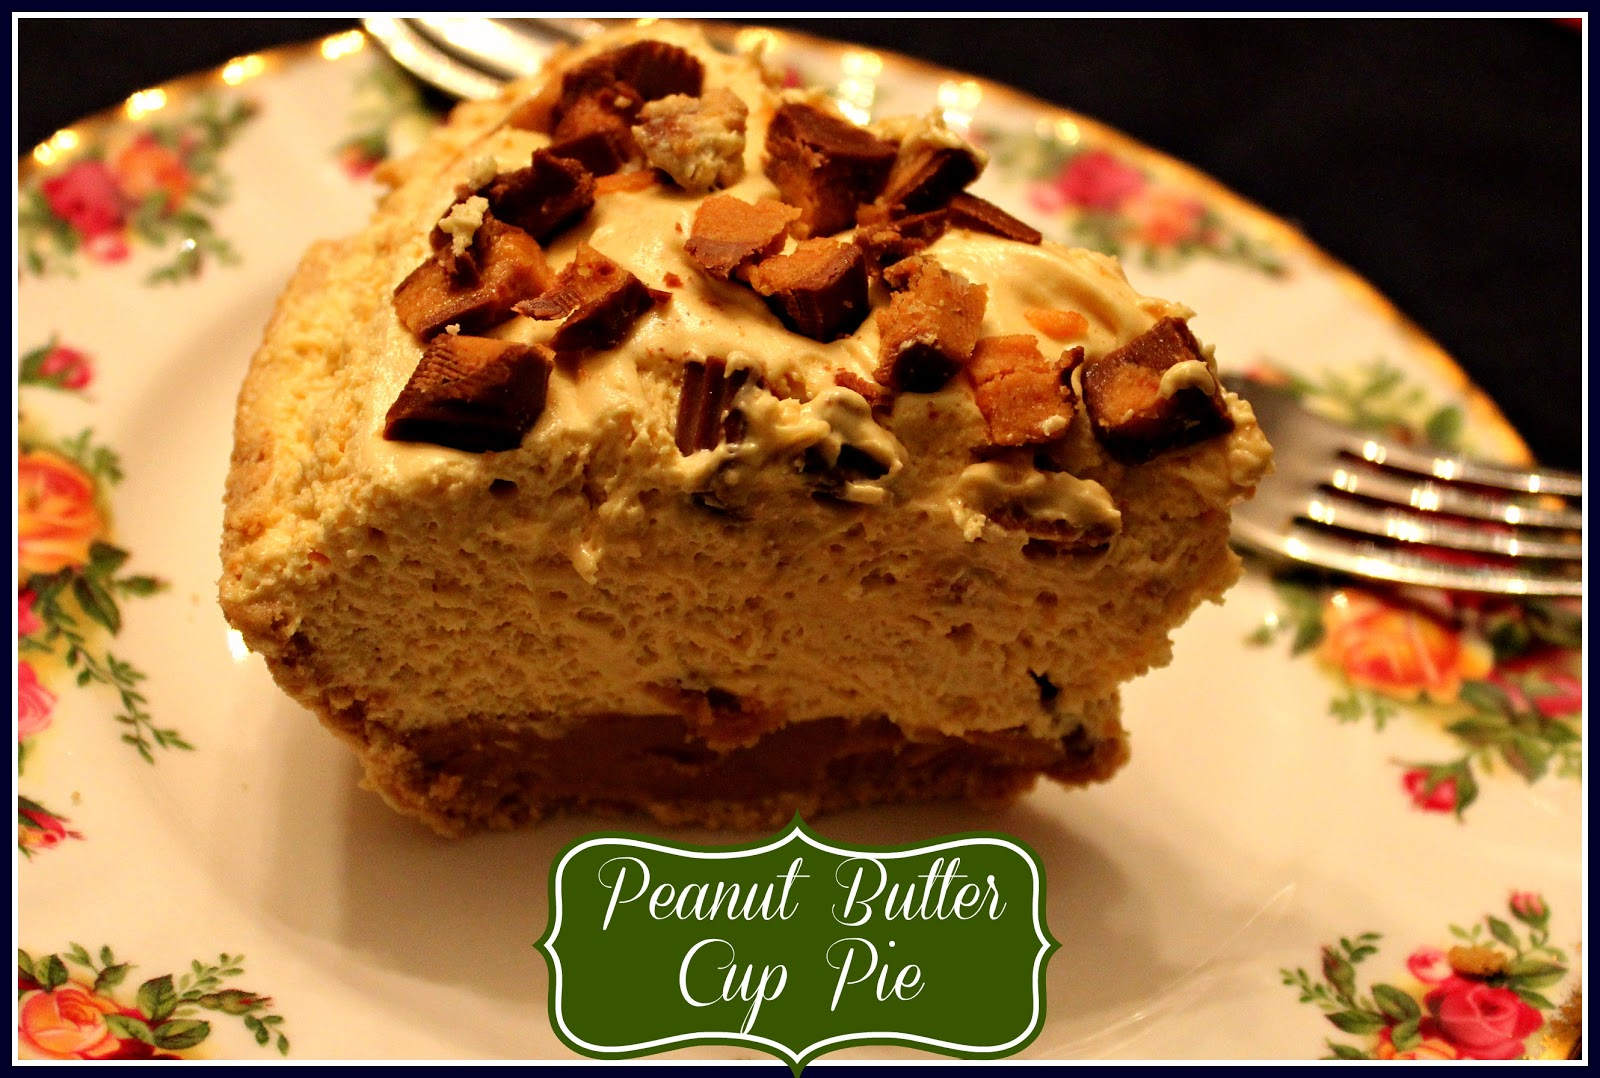 Sweet Tea and Cornbread: Peanut Butter Cup Pie!